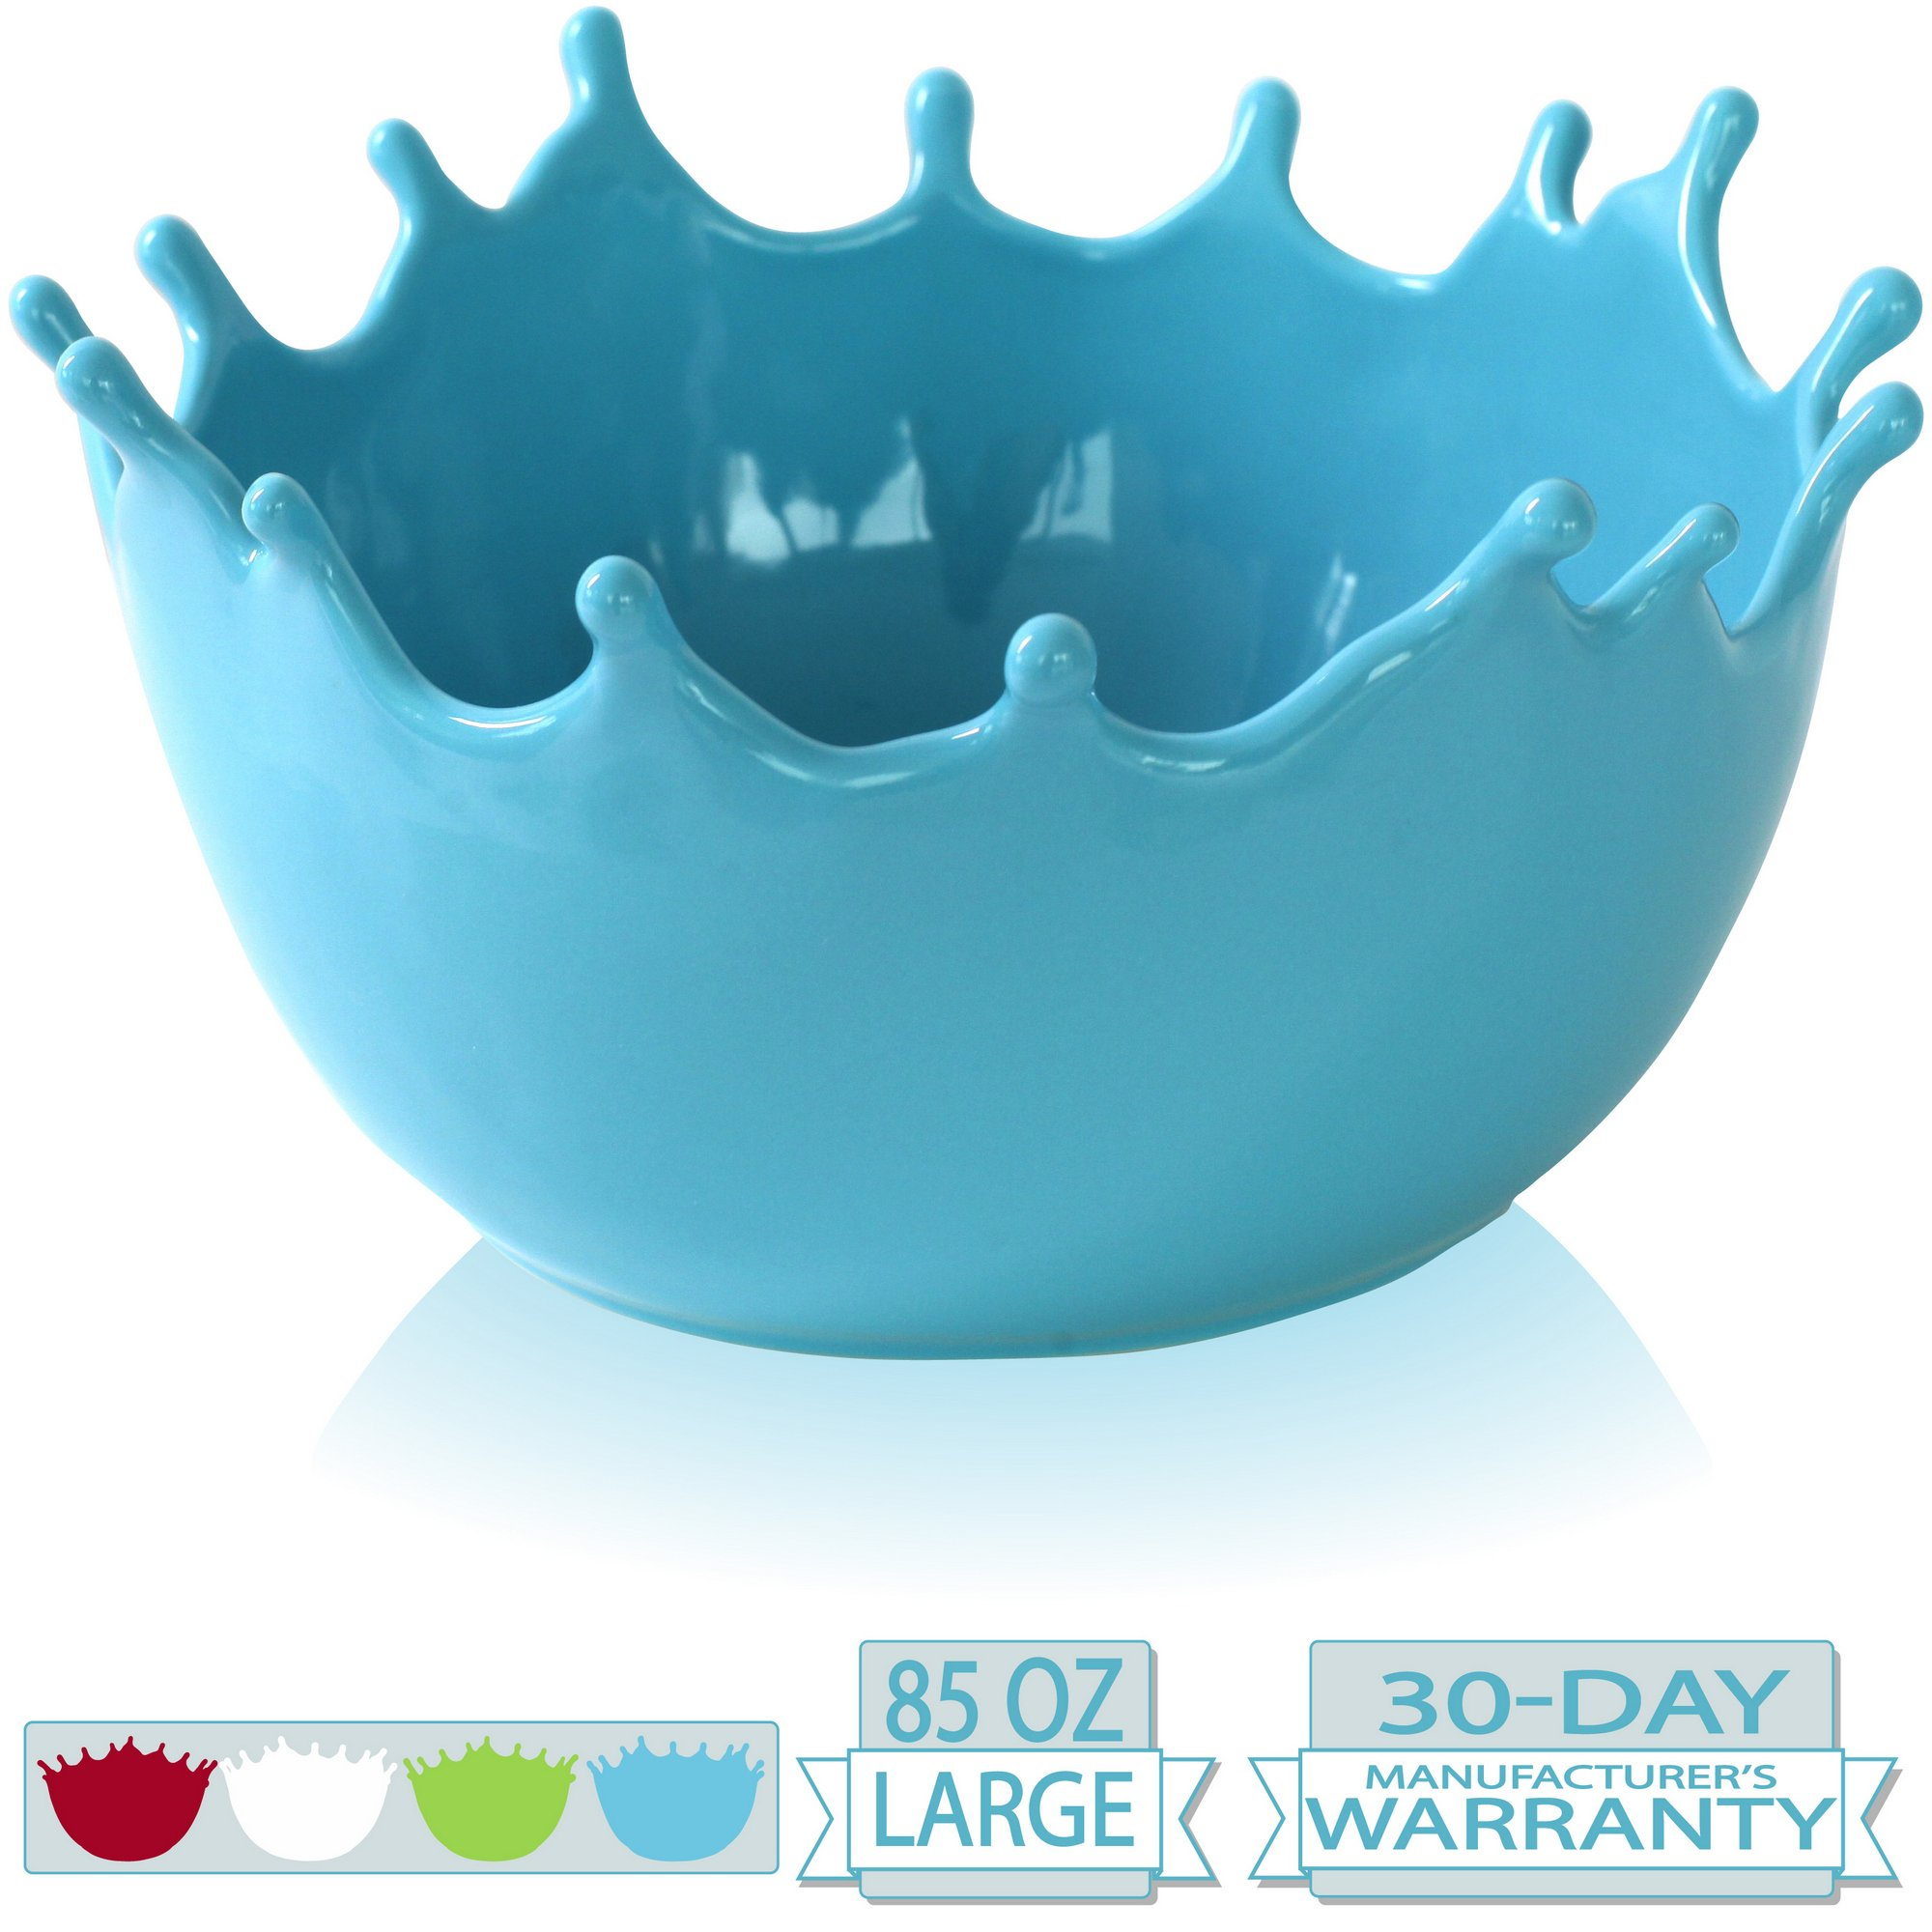 Premium Large Salad Bowl - Serving Bowl - Fruit Bowl - Candy Dish - Decorative Centerpiece Bowl - Best for Serving Fruit Salad Candy Popcorn Punch Chips Pasta - Unique Modern Design - Ceramic (Blue)